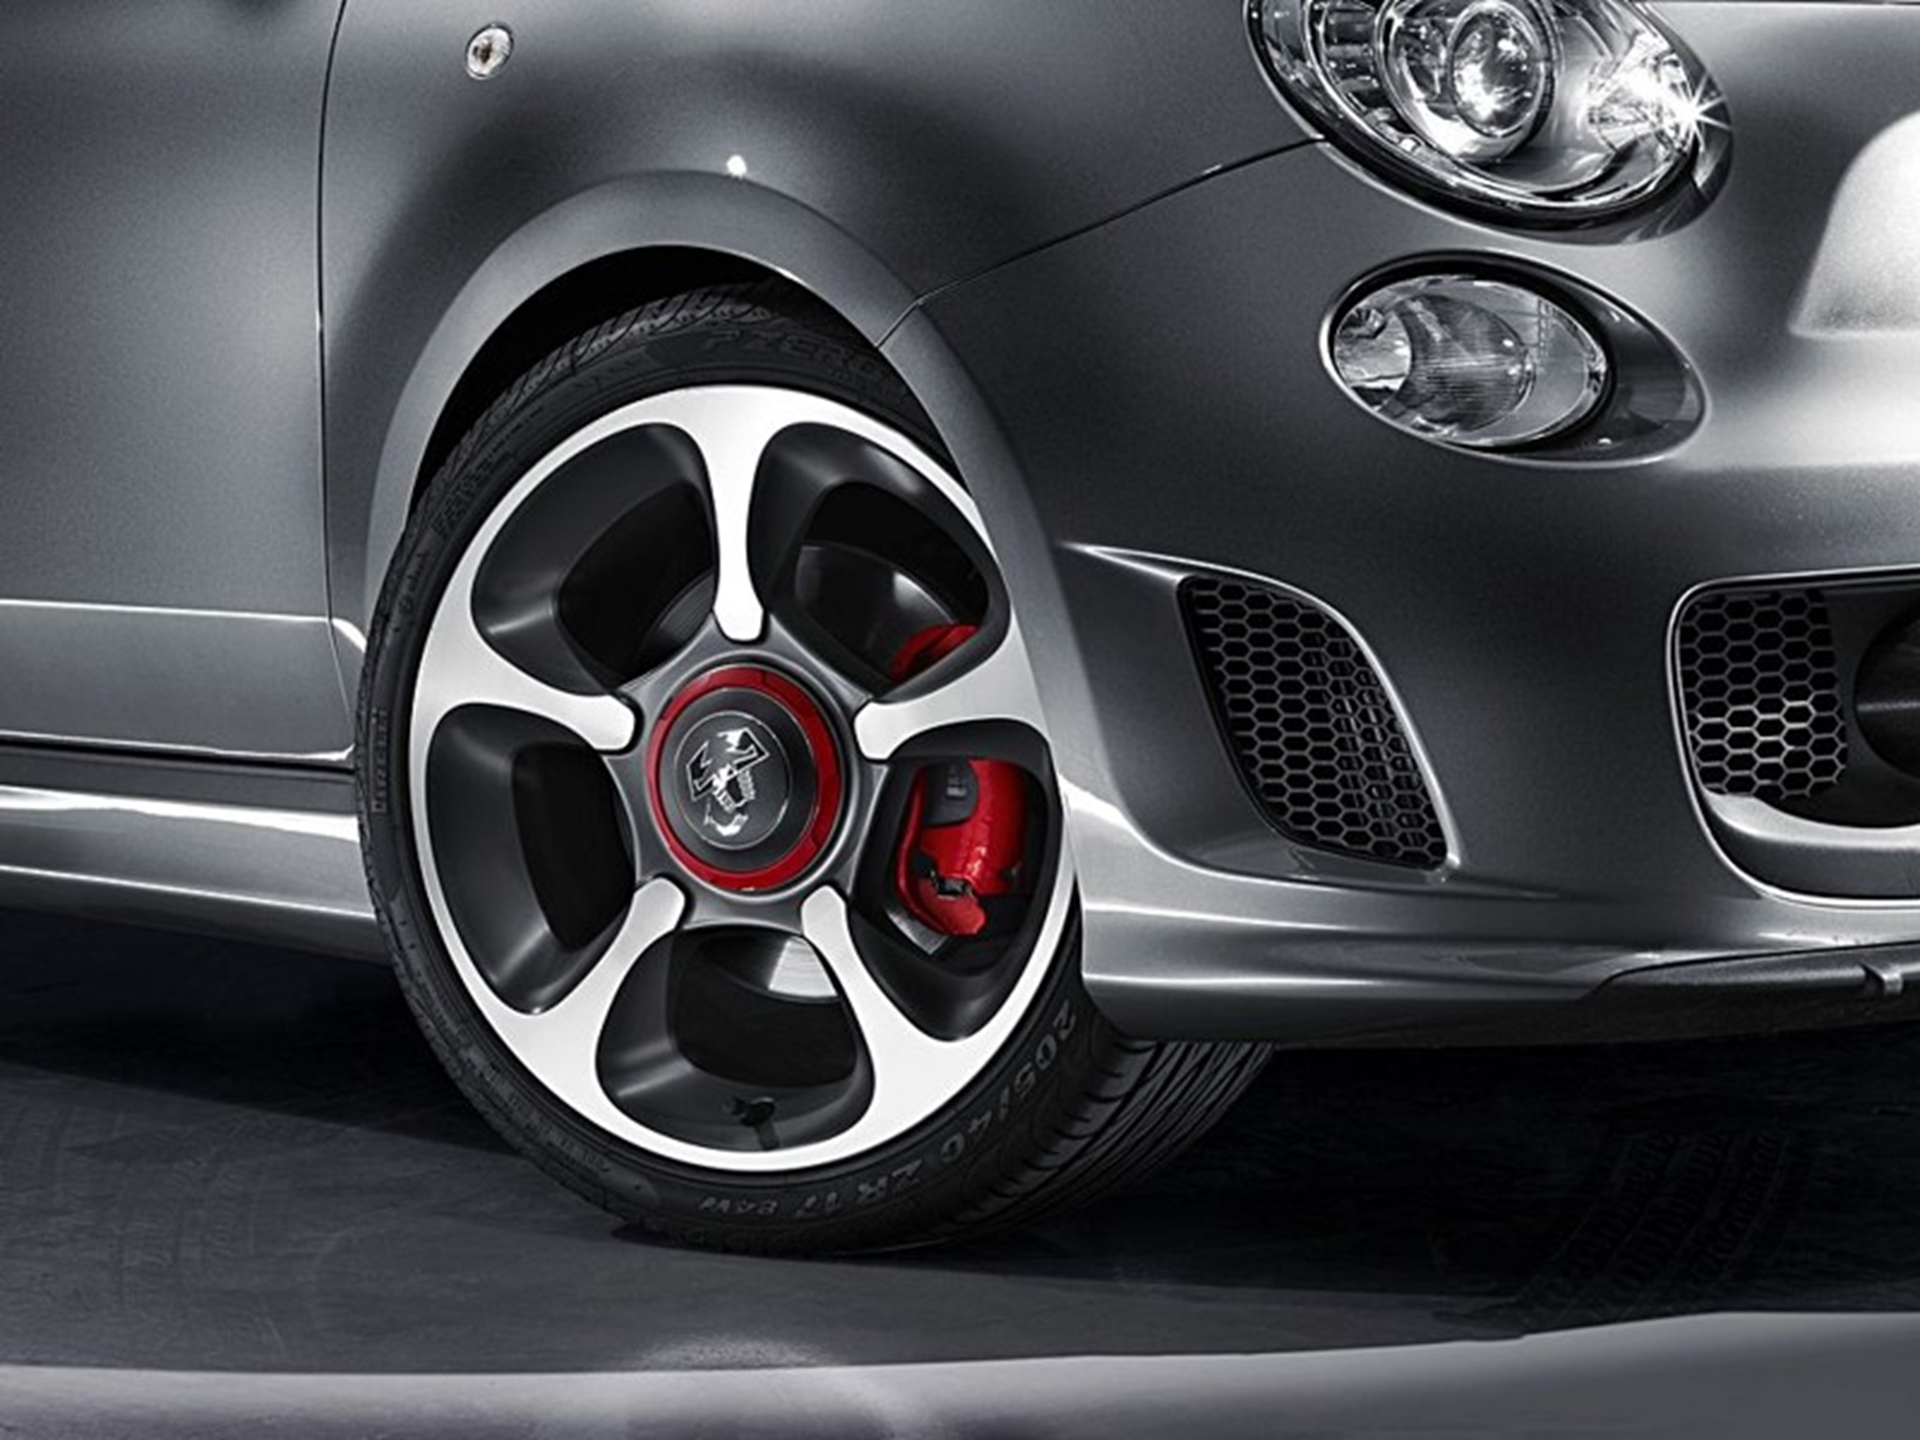 Abarth 500 wheel